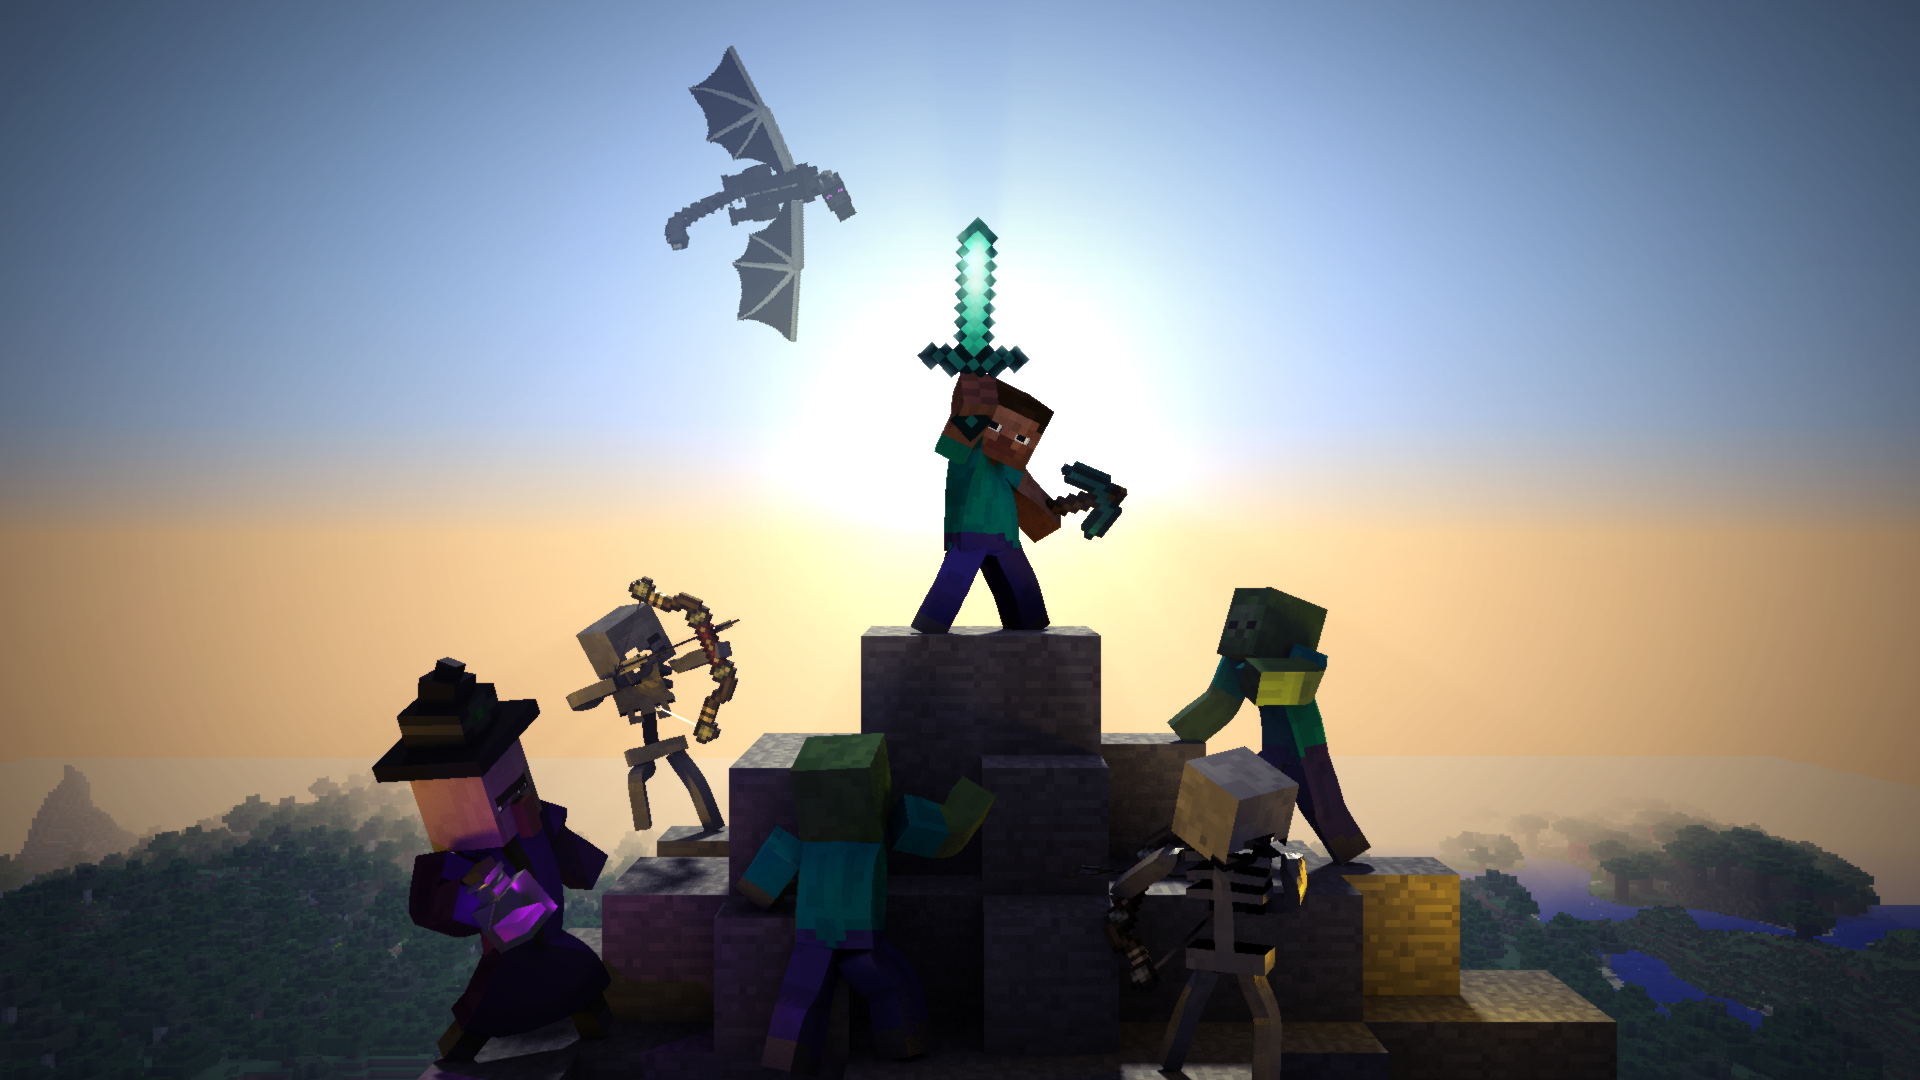 This is a HD 3D Minecraft wallpaper that I worked on I used Blender 1920x1080